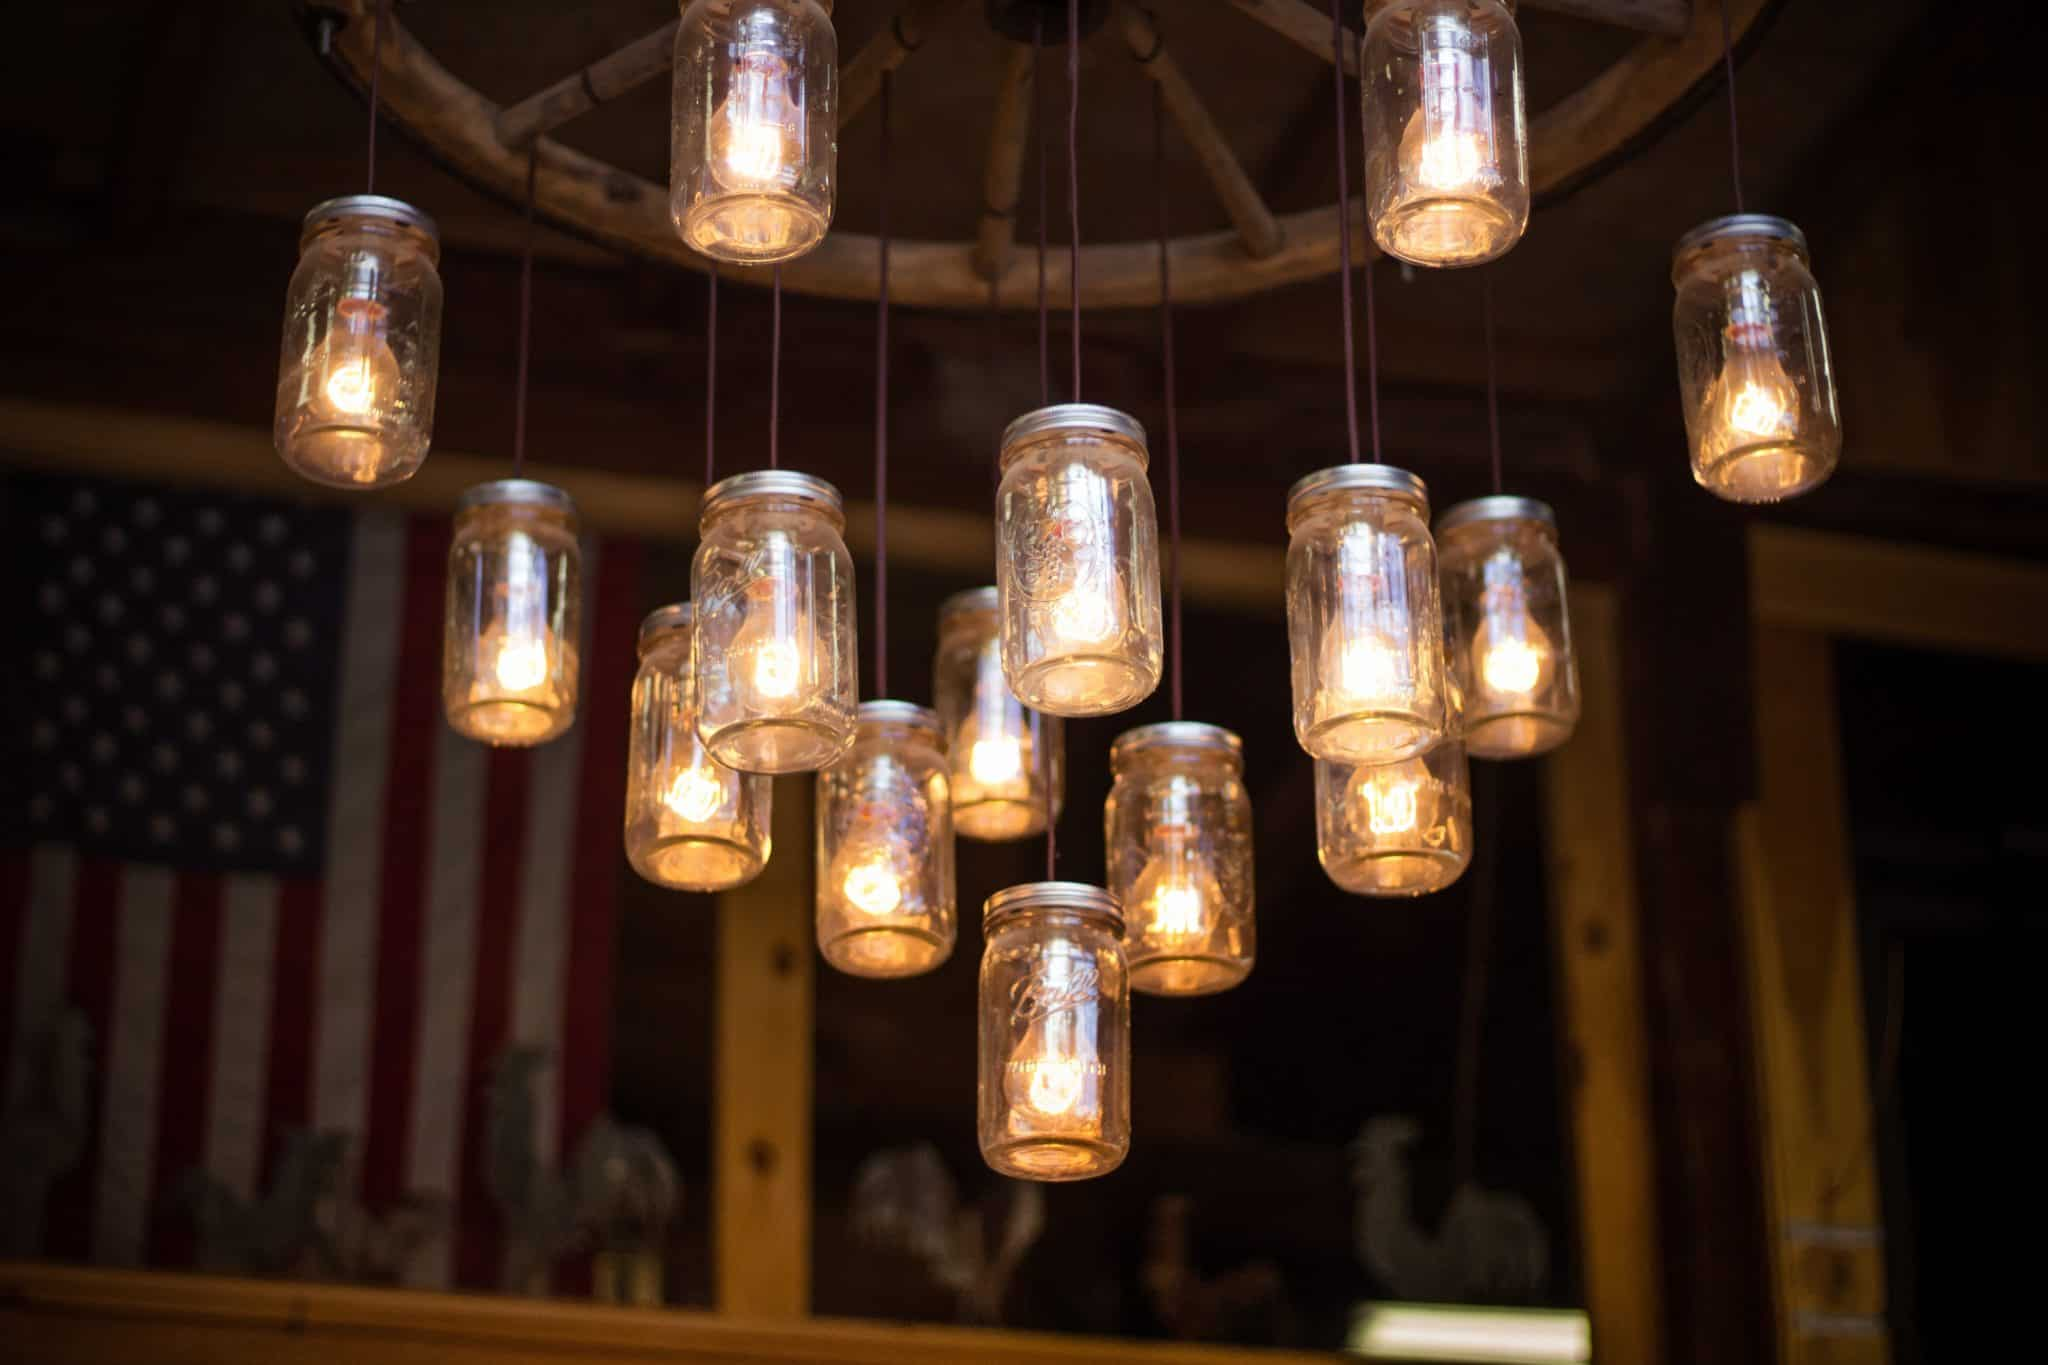 9-best-recycled-crafts-9-masonr-jar-hanging-lamps-unsplash